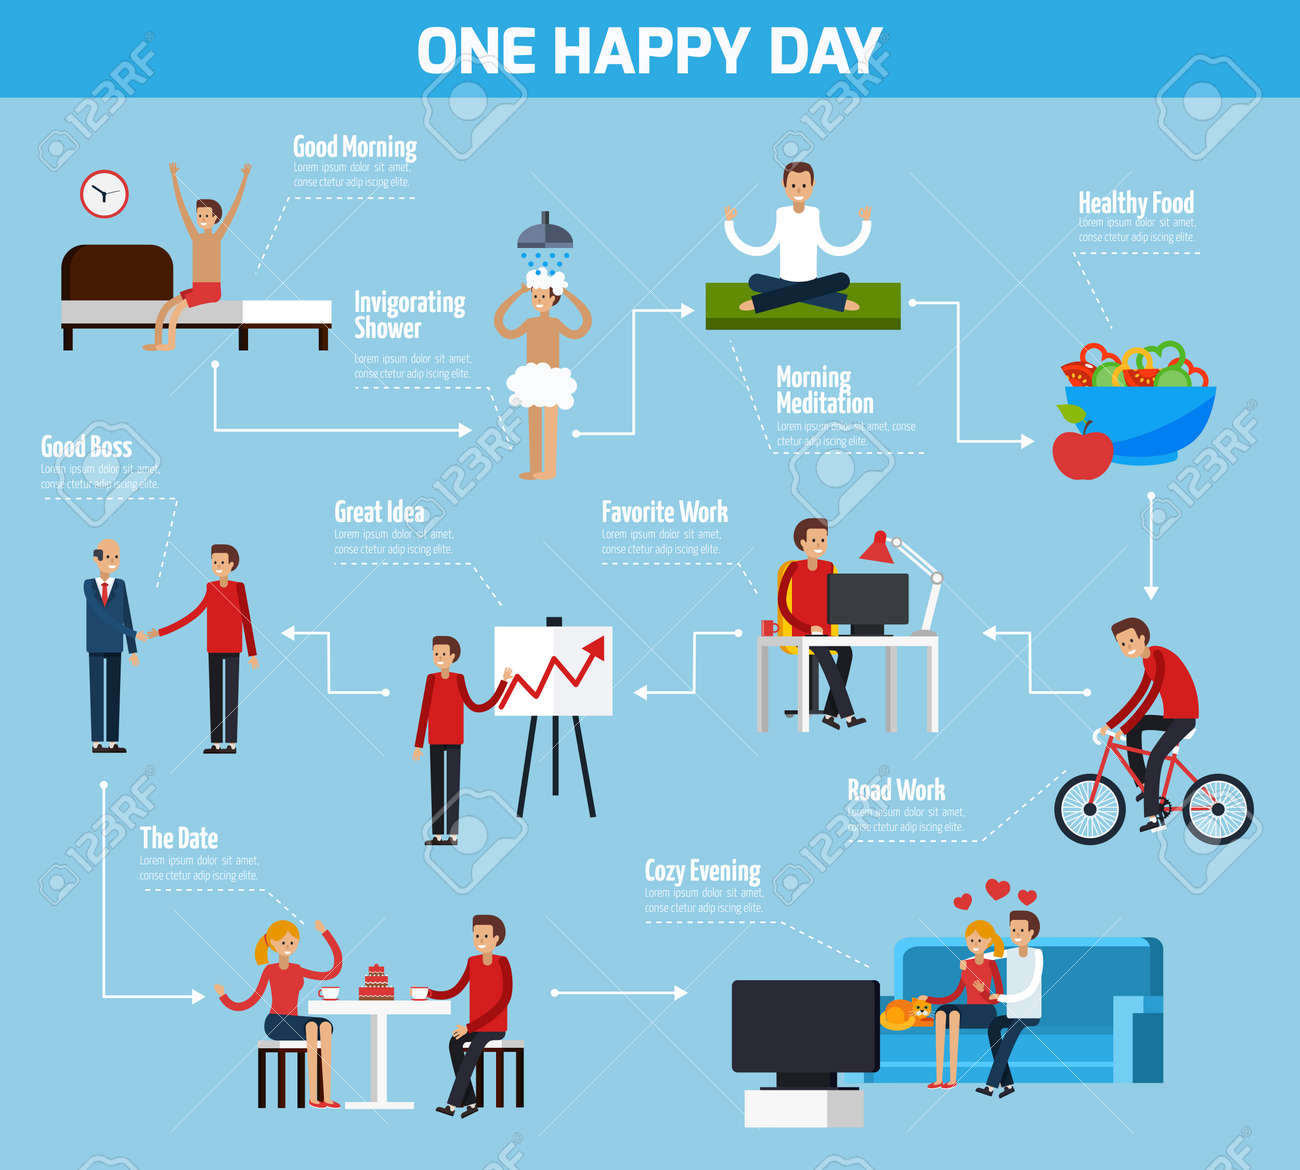 One happy day flowchart with date and food symbols flat vector illustration - 165247735